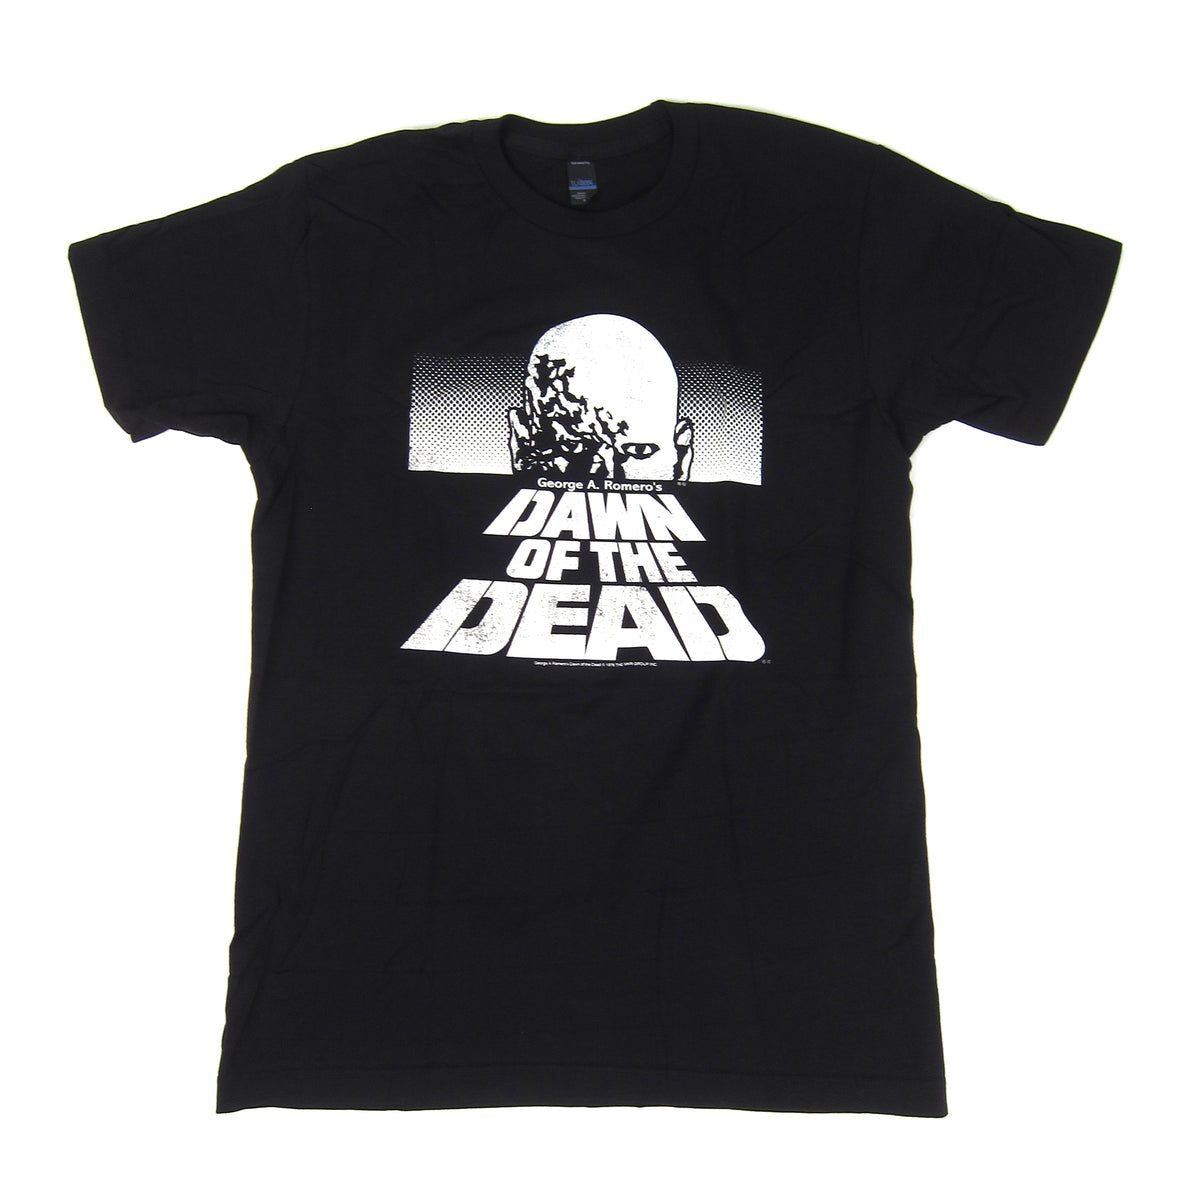 Dawn Of The Dead: Poster Shirt - Black